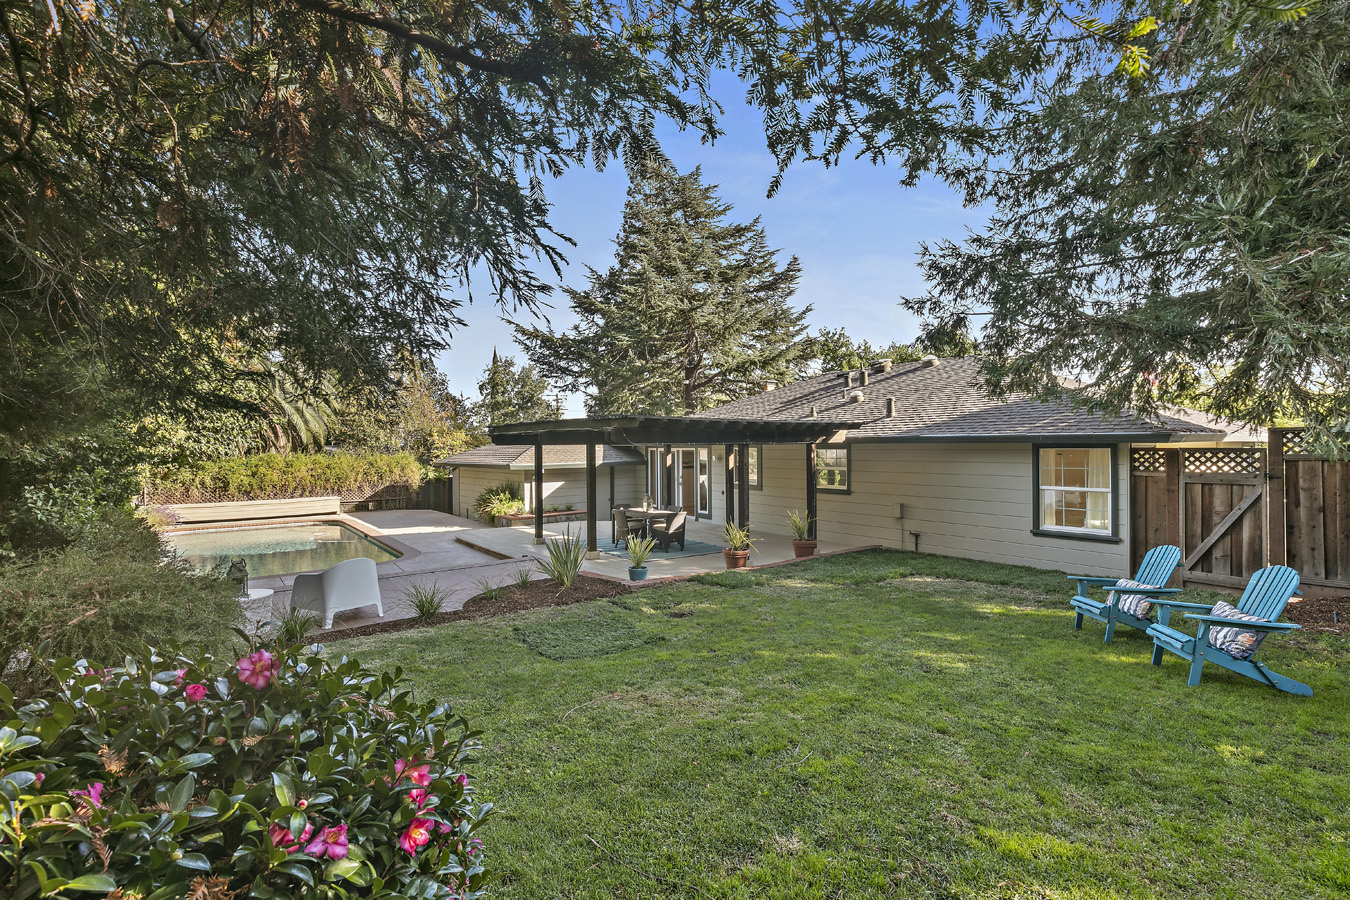 143 Kendall Rd, Walnut Creek, CA 94595